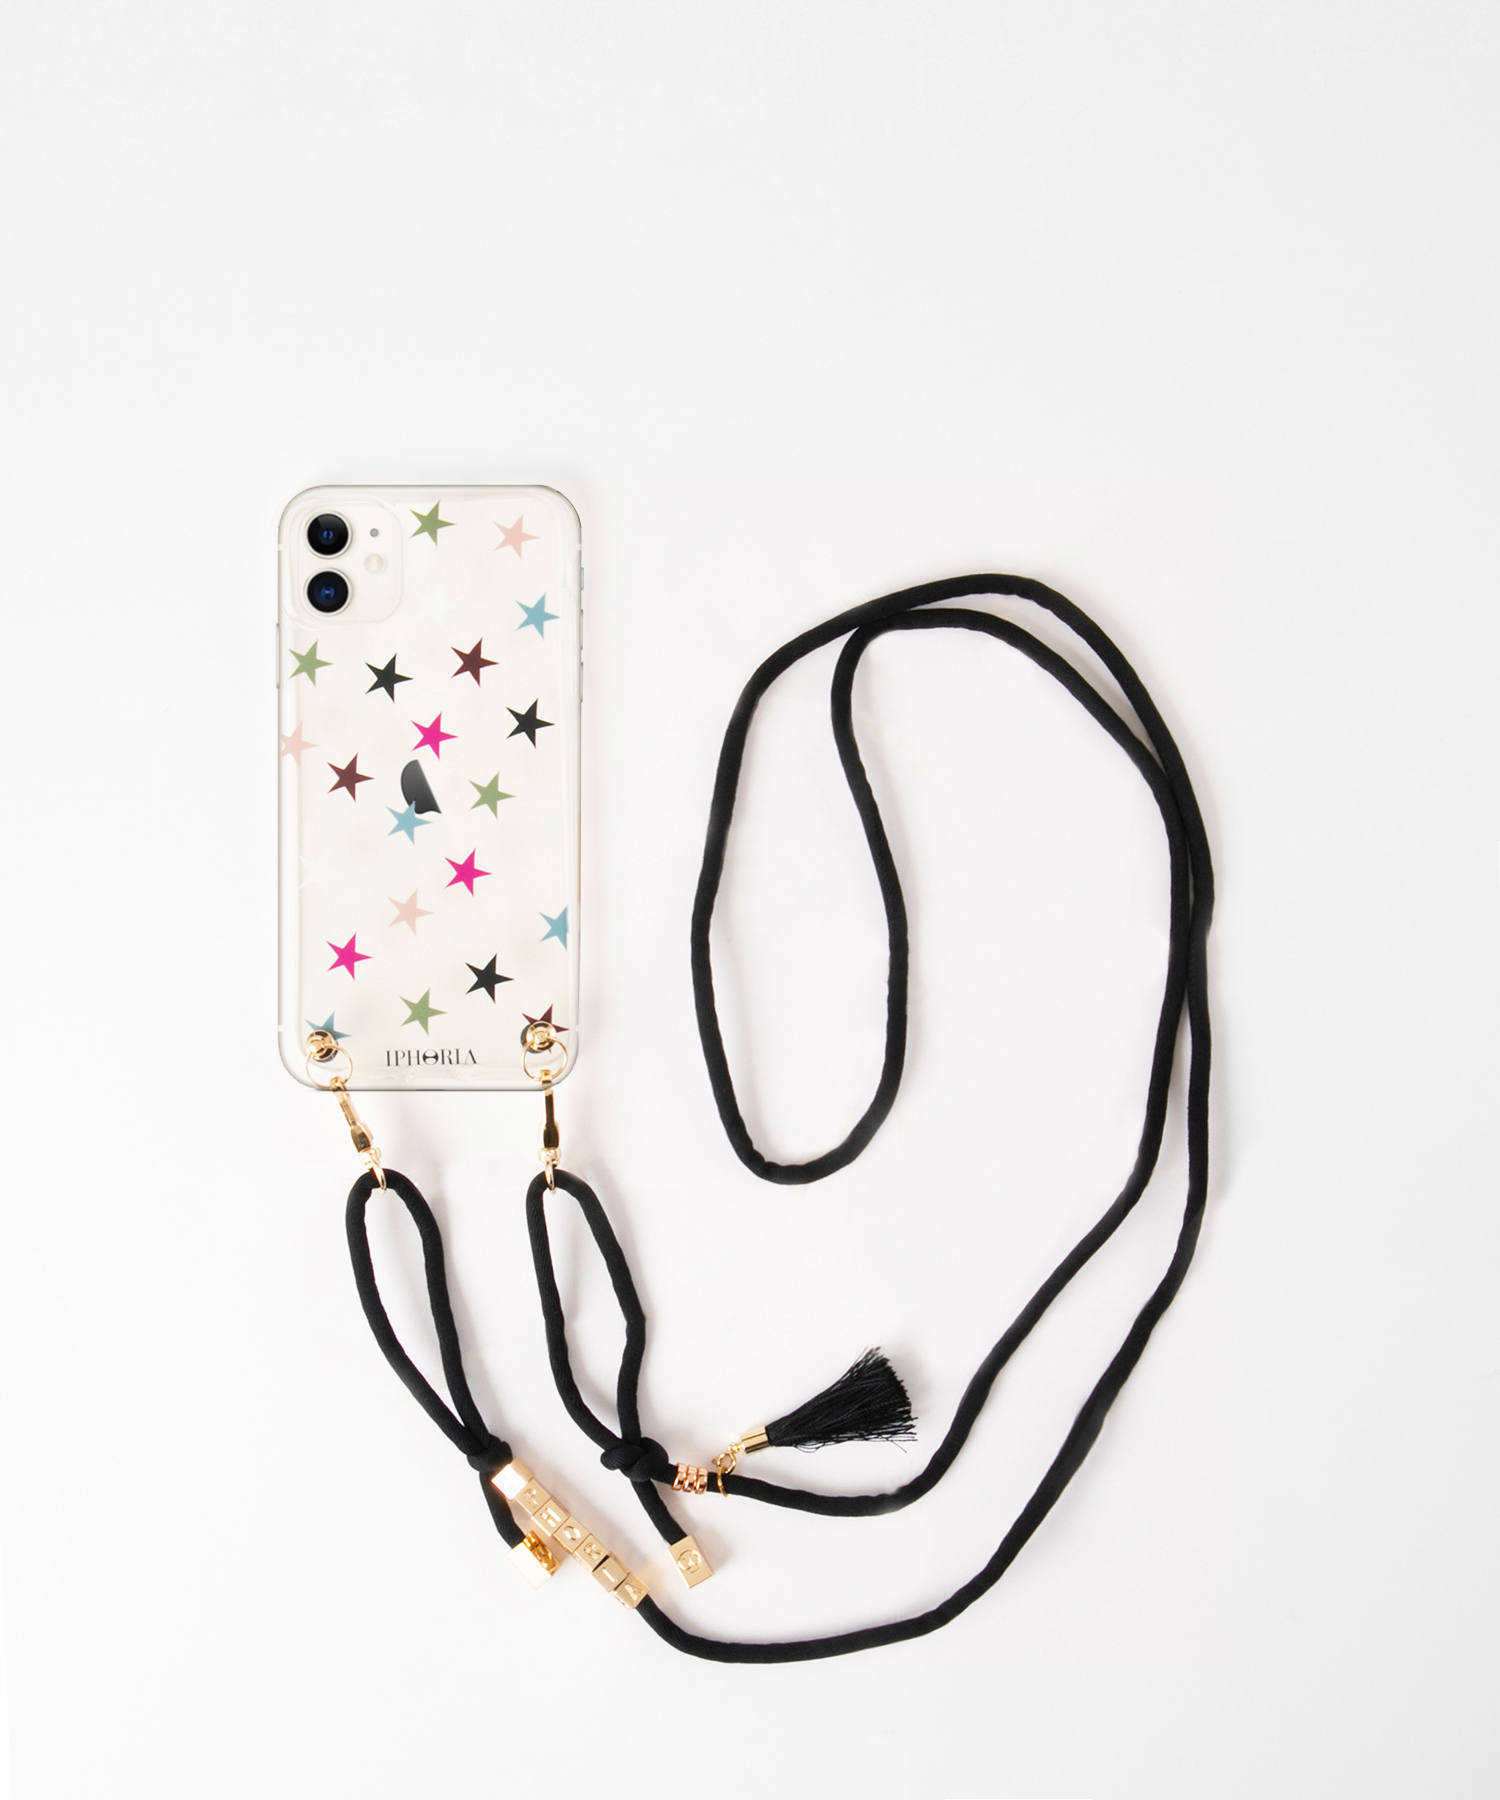 Necklace Case for Apple iPhone 11 - Colorful Stars